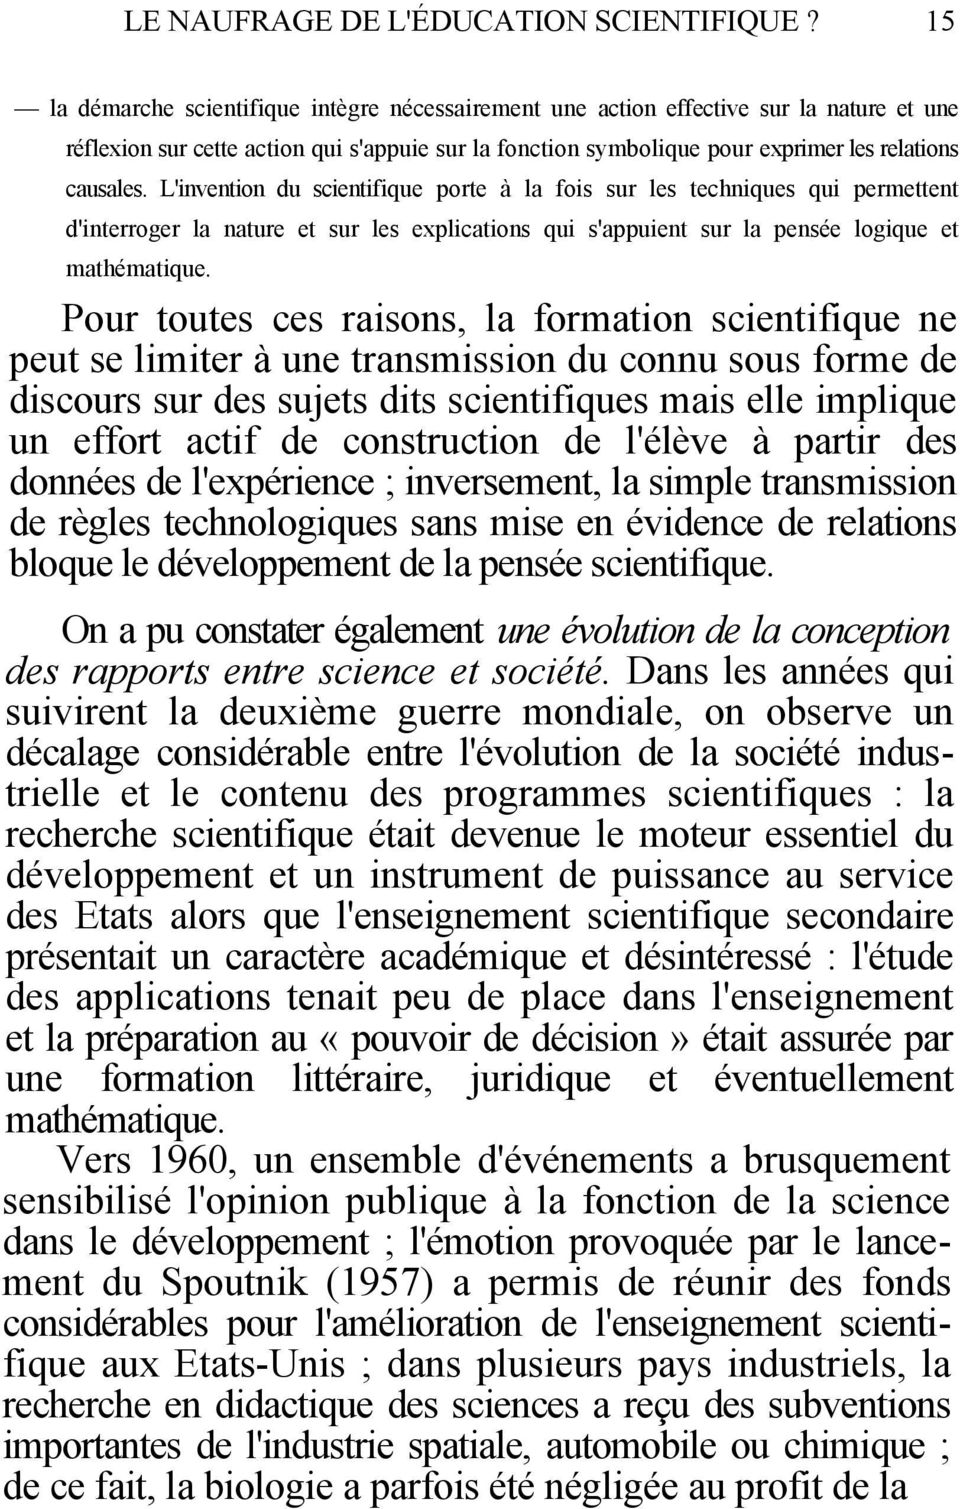 L'invention du scientifique porte à la fois sur les techniques qui permettent d'interroger la nature et sur les explications qui s'appuient sur la pensée logique et mathématique.